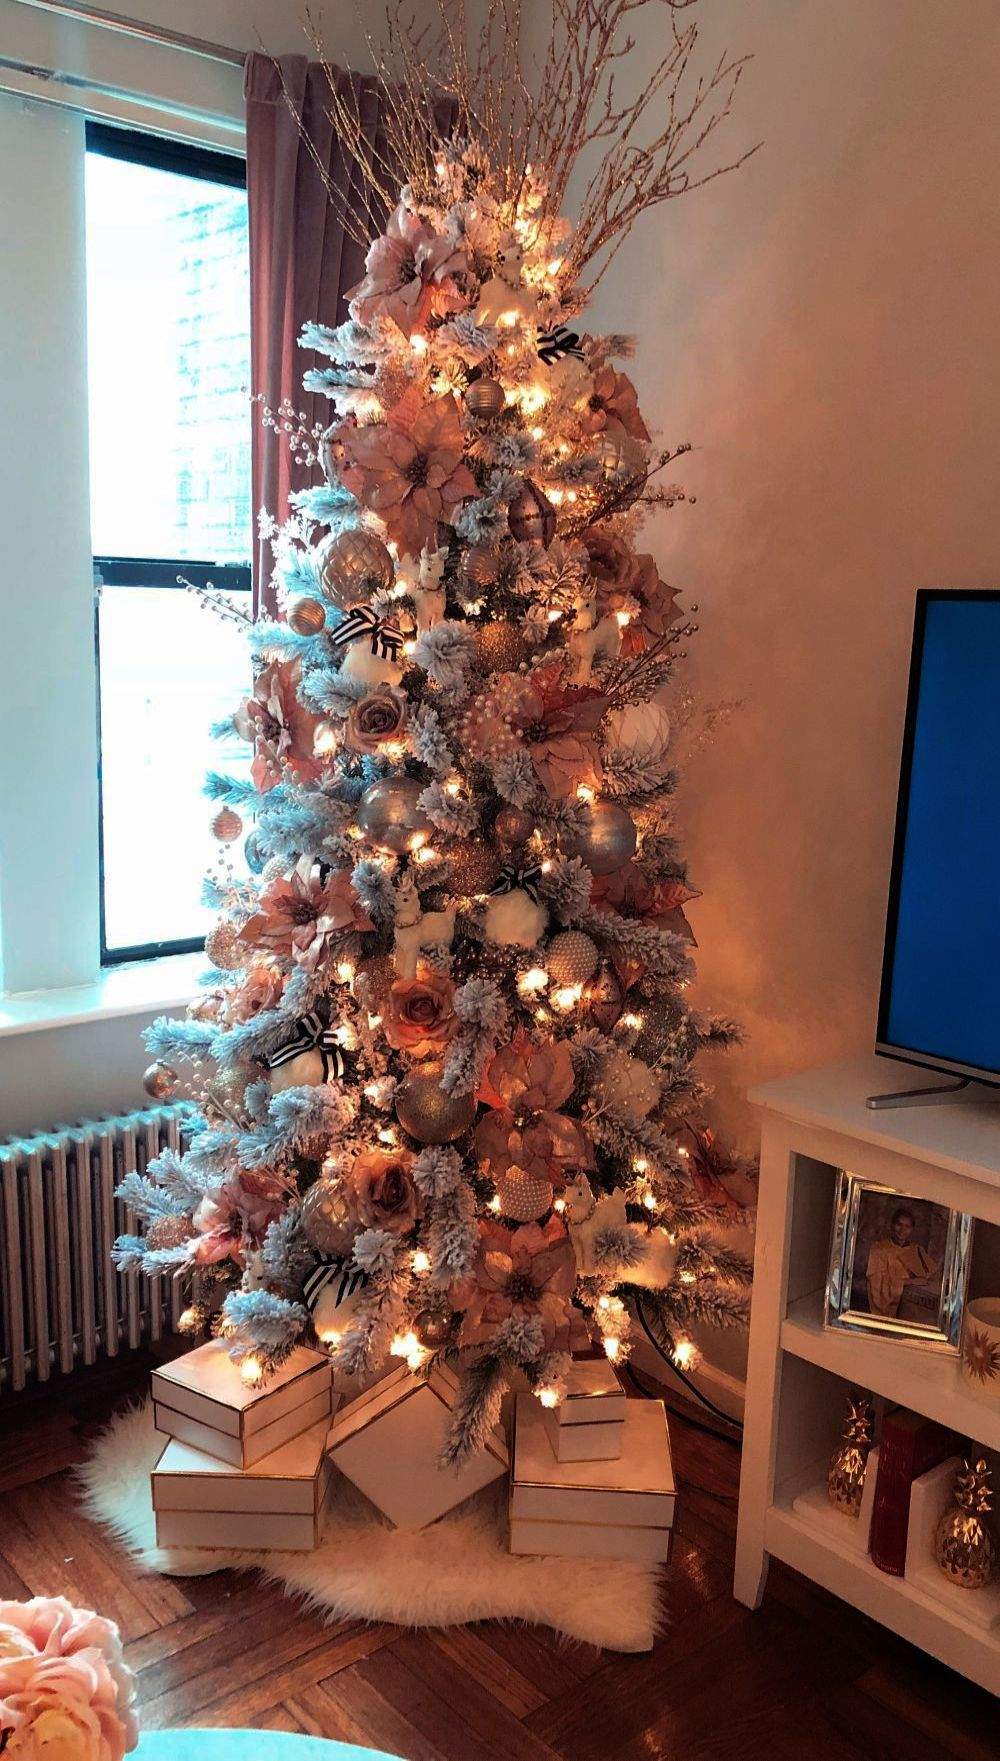 Christmas Tree Skirt Crate And Barrel Behind Christmas Tree Clearance Hobby Rose Gold Christmas Tree Pink Christmas Tree Decorations Christmas Tree Inspiration